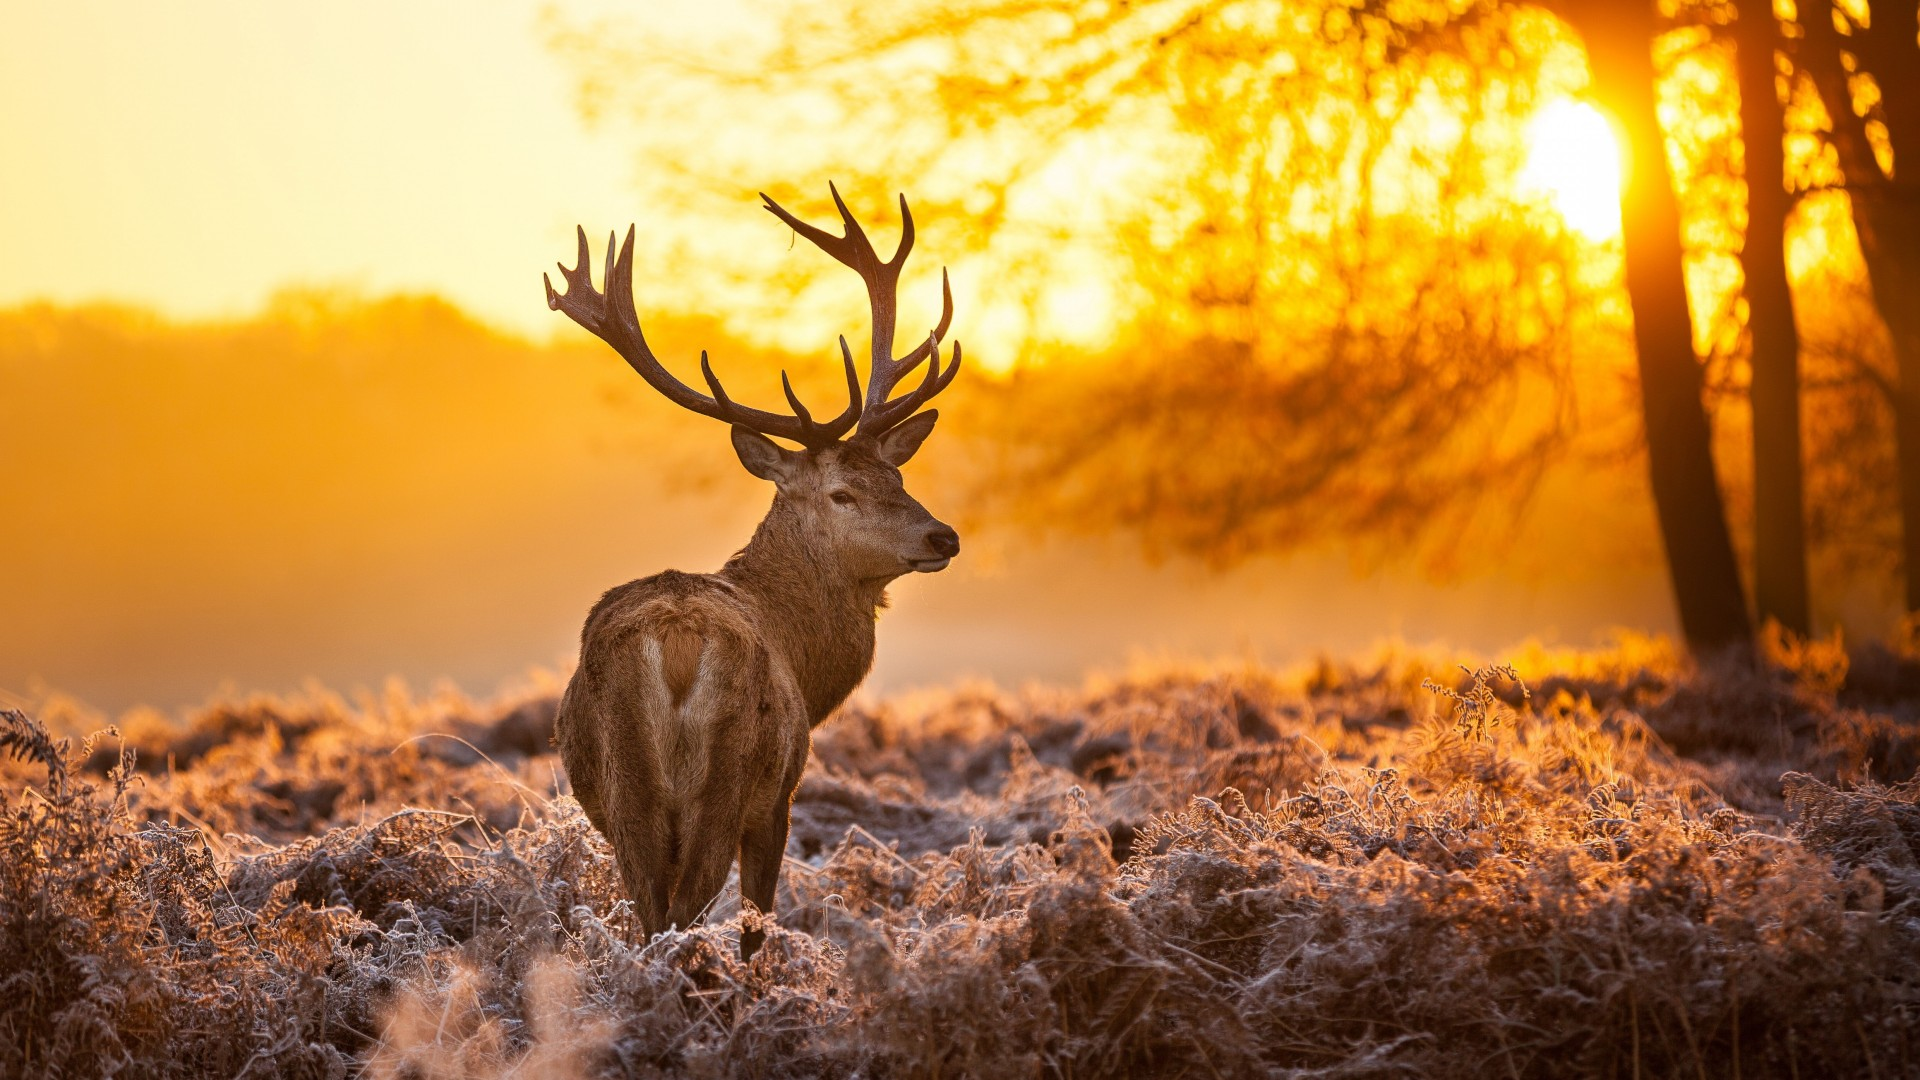 Олень, 4k, HD, природа, дикая, закат, зима, Deer, 4k, HD wallpaper, wild, sun, yellow, nature, winter (horizontal)